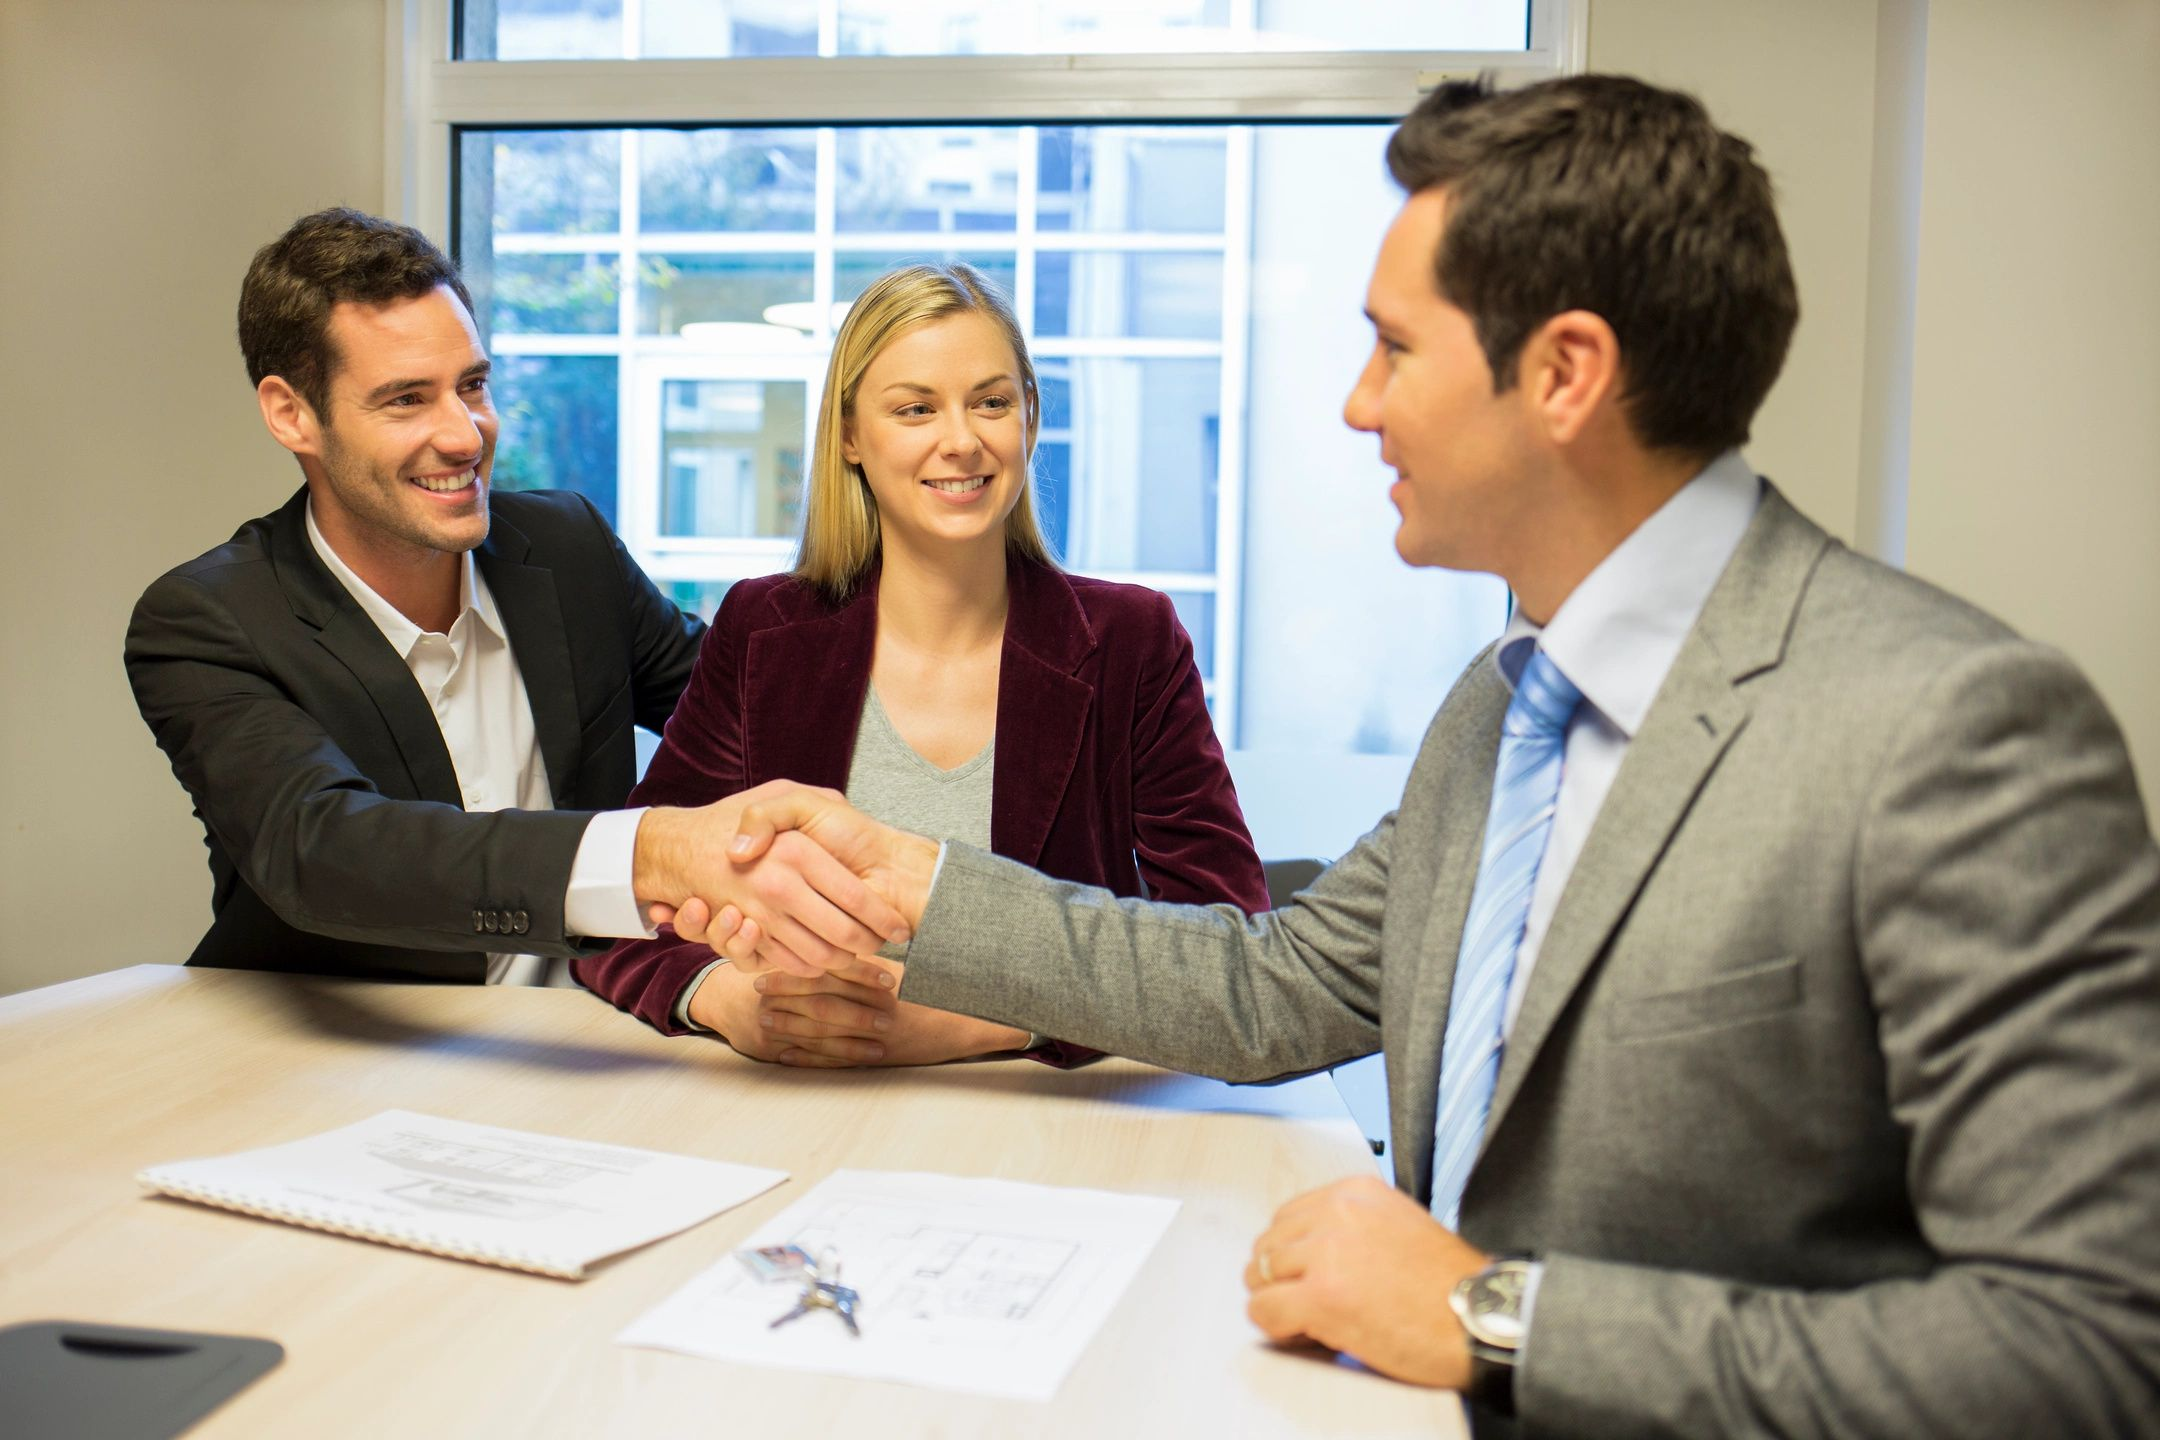 Hard Money Lenders working with real estate brokers to close a deal